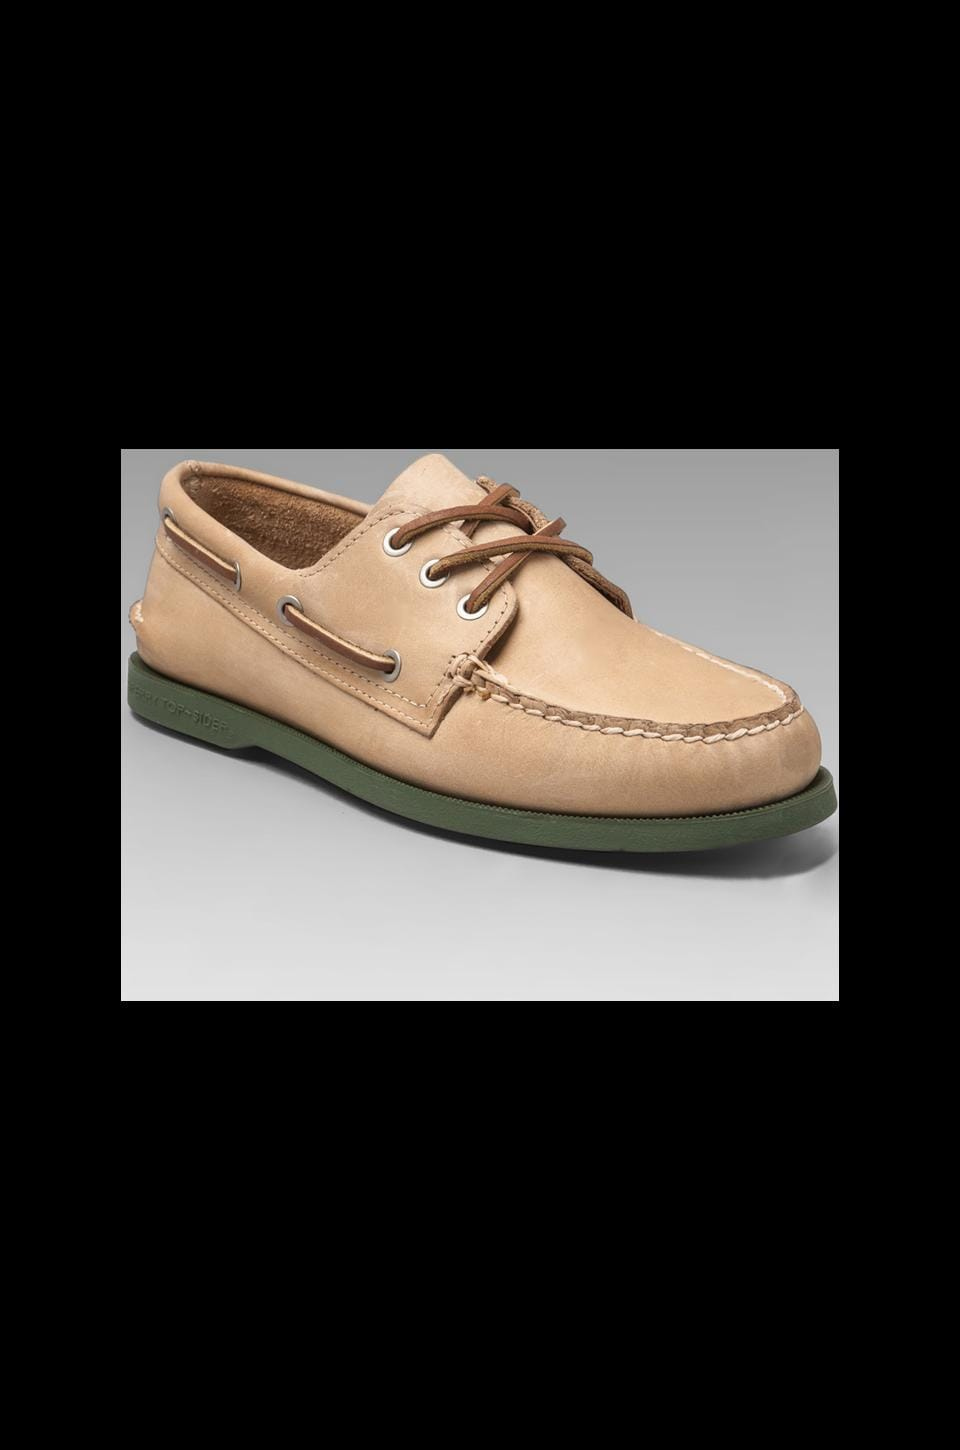 Sperry Top-Sider Silvercloud Collection A/O in Oatmeal/Rifle Green